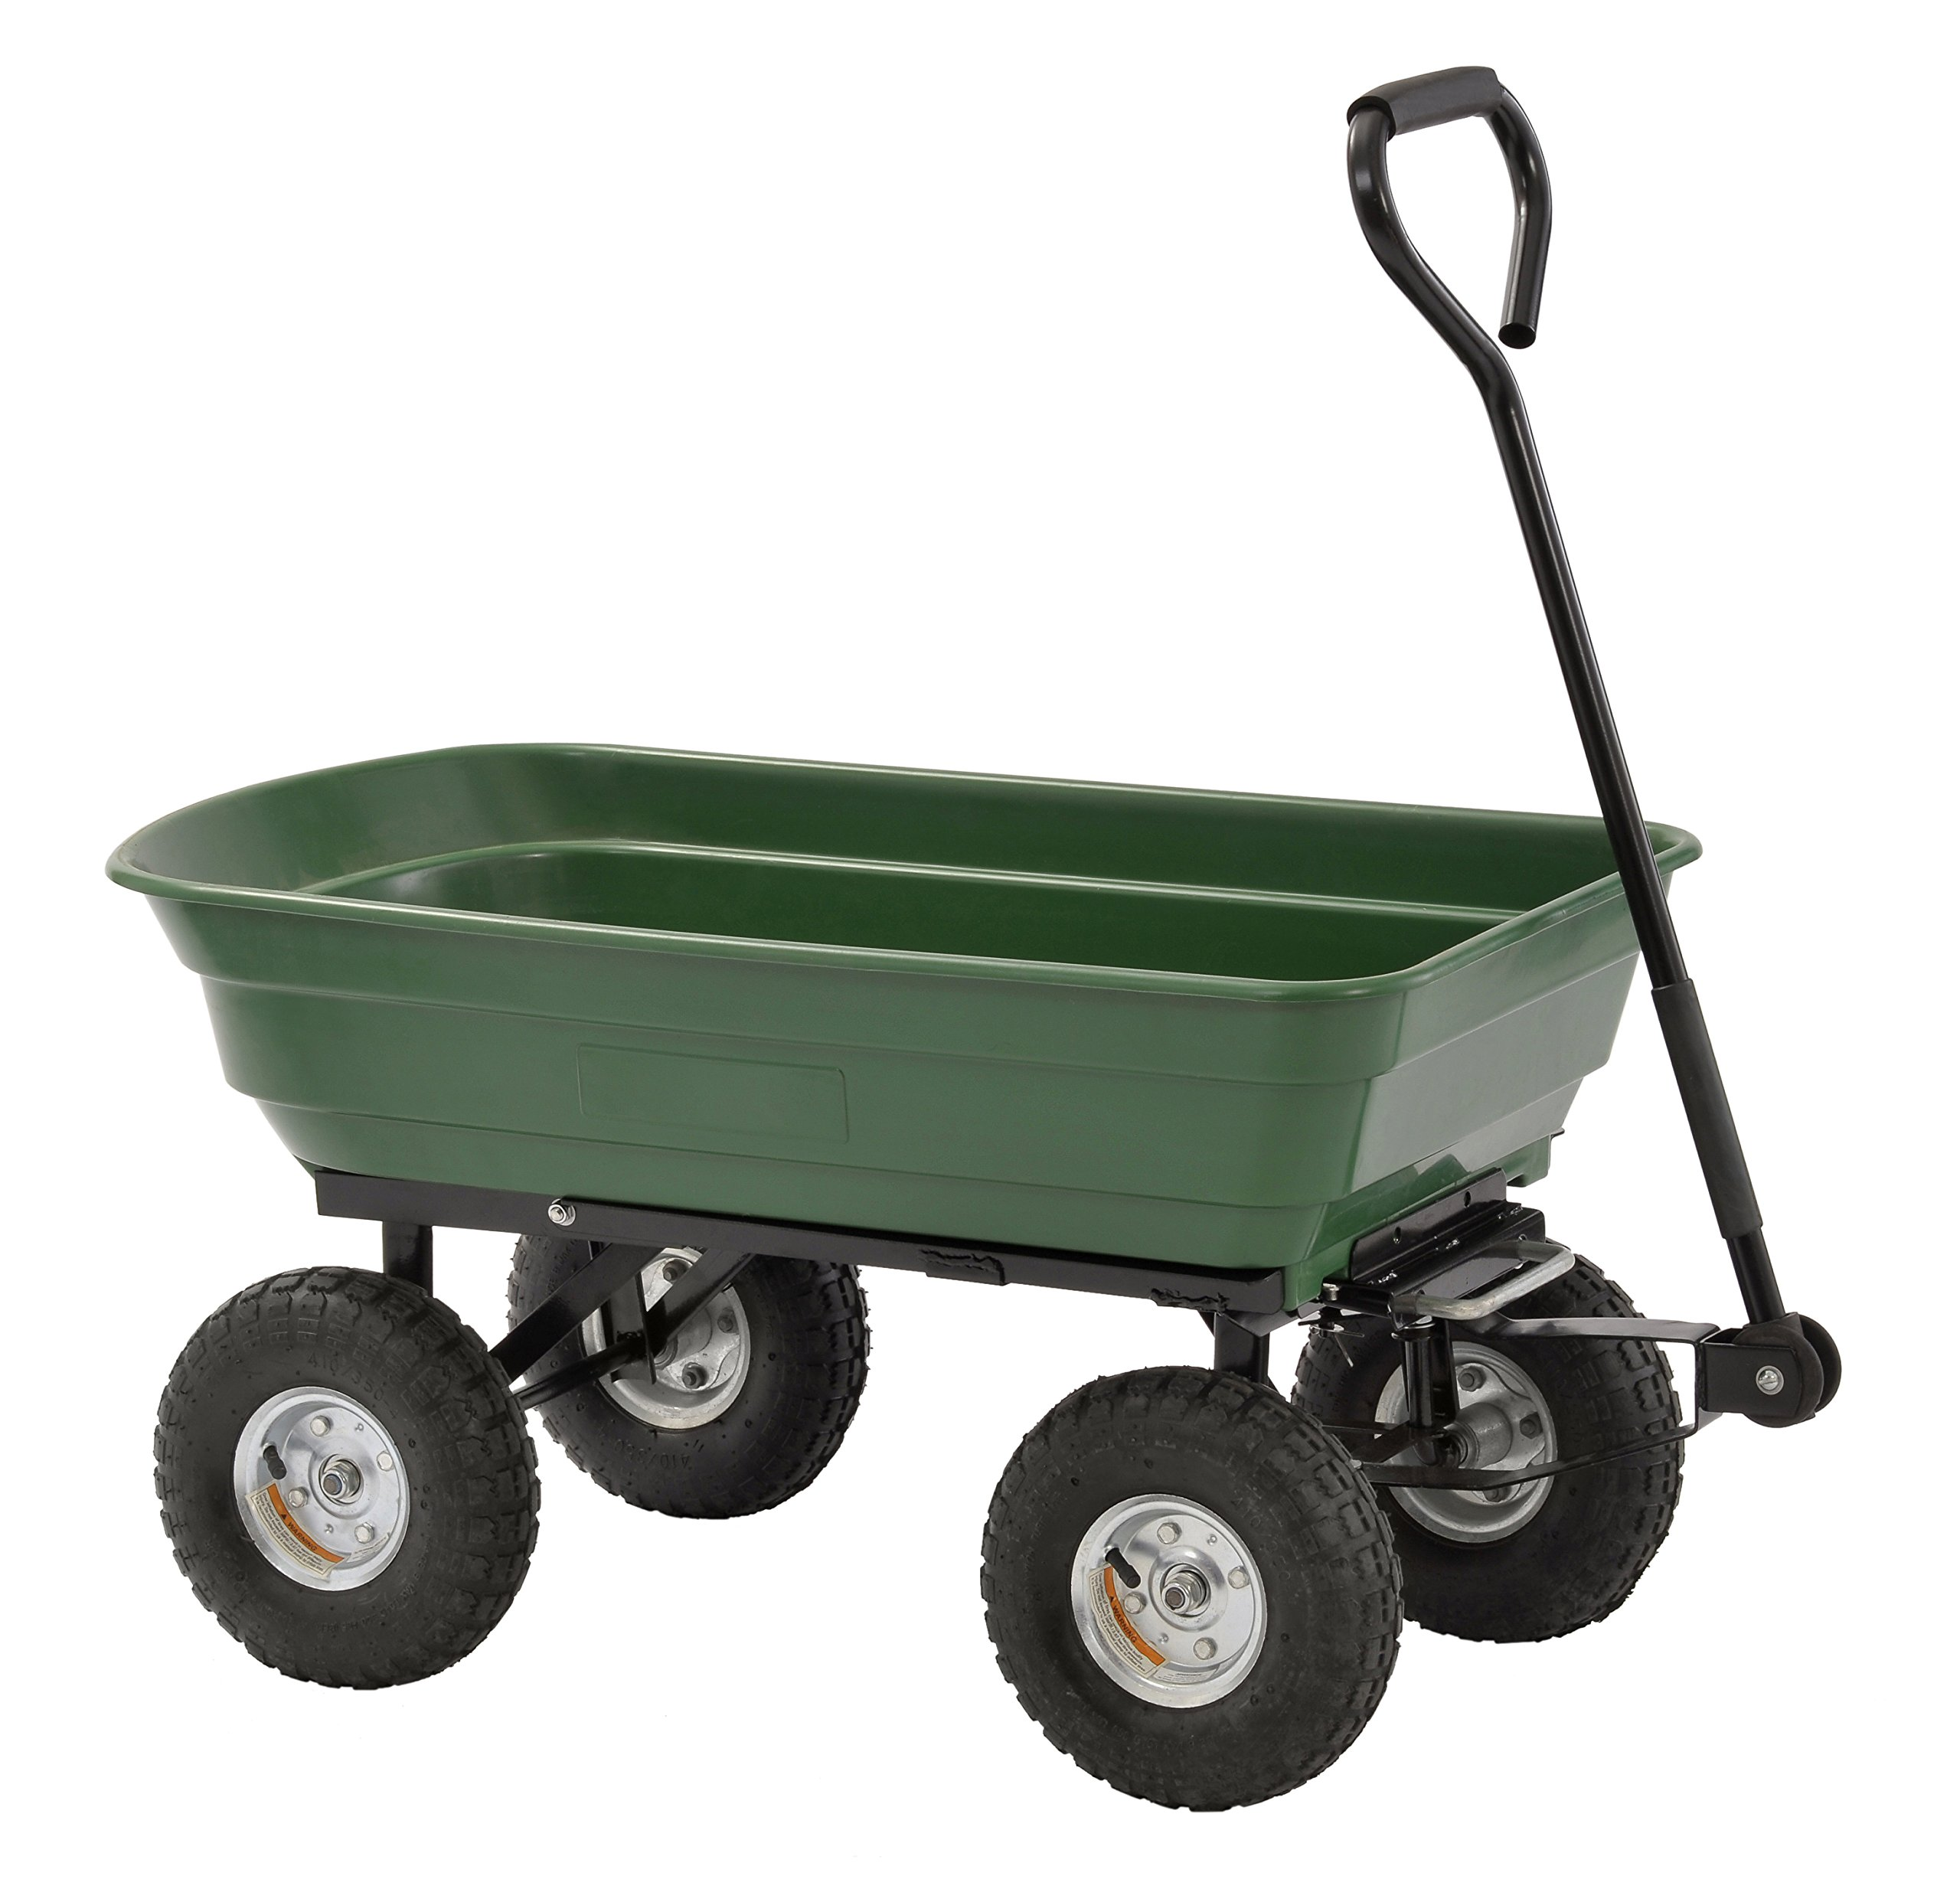 Sandusky Lee Pw3720 Steel/Poly Crate Wagon, 550 lb Load Capacity, 37'' Length, 20'' Width, 20'' Height, Green